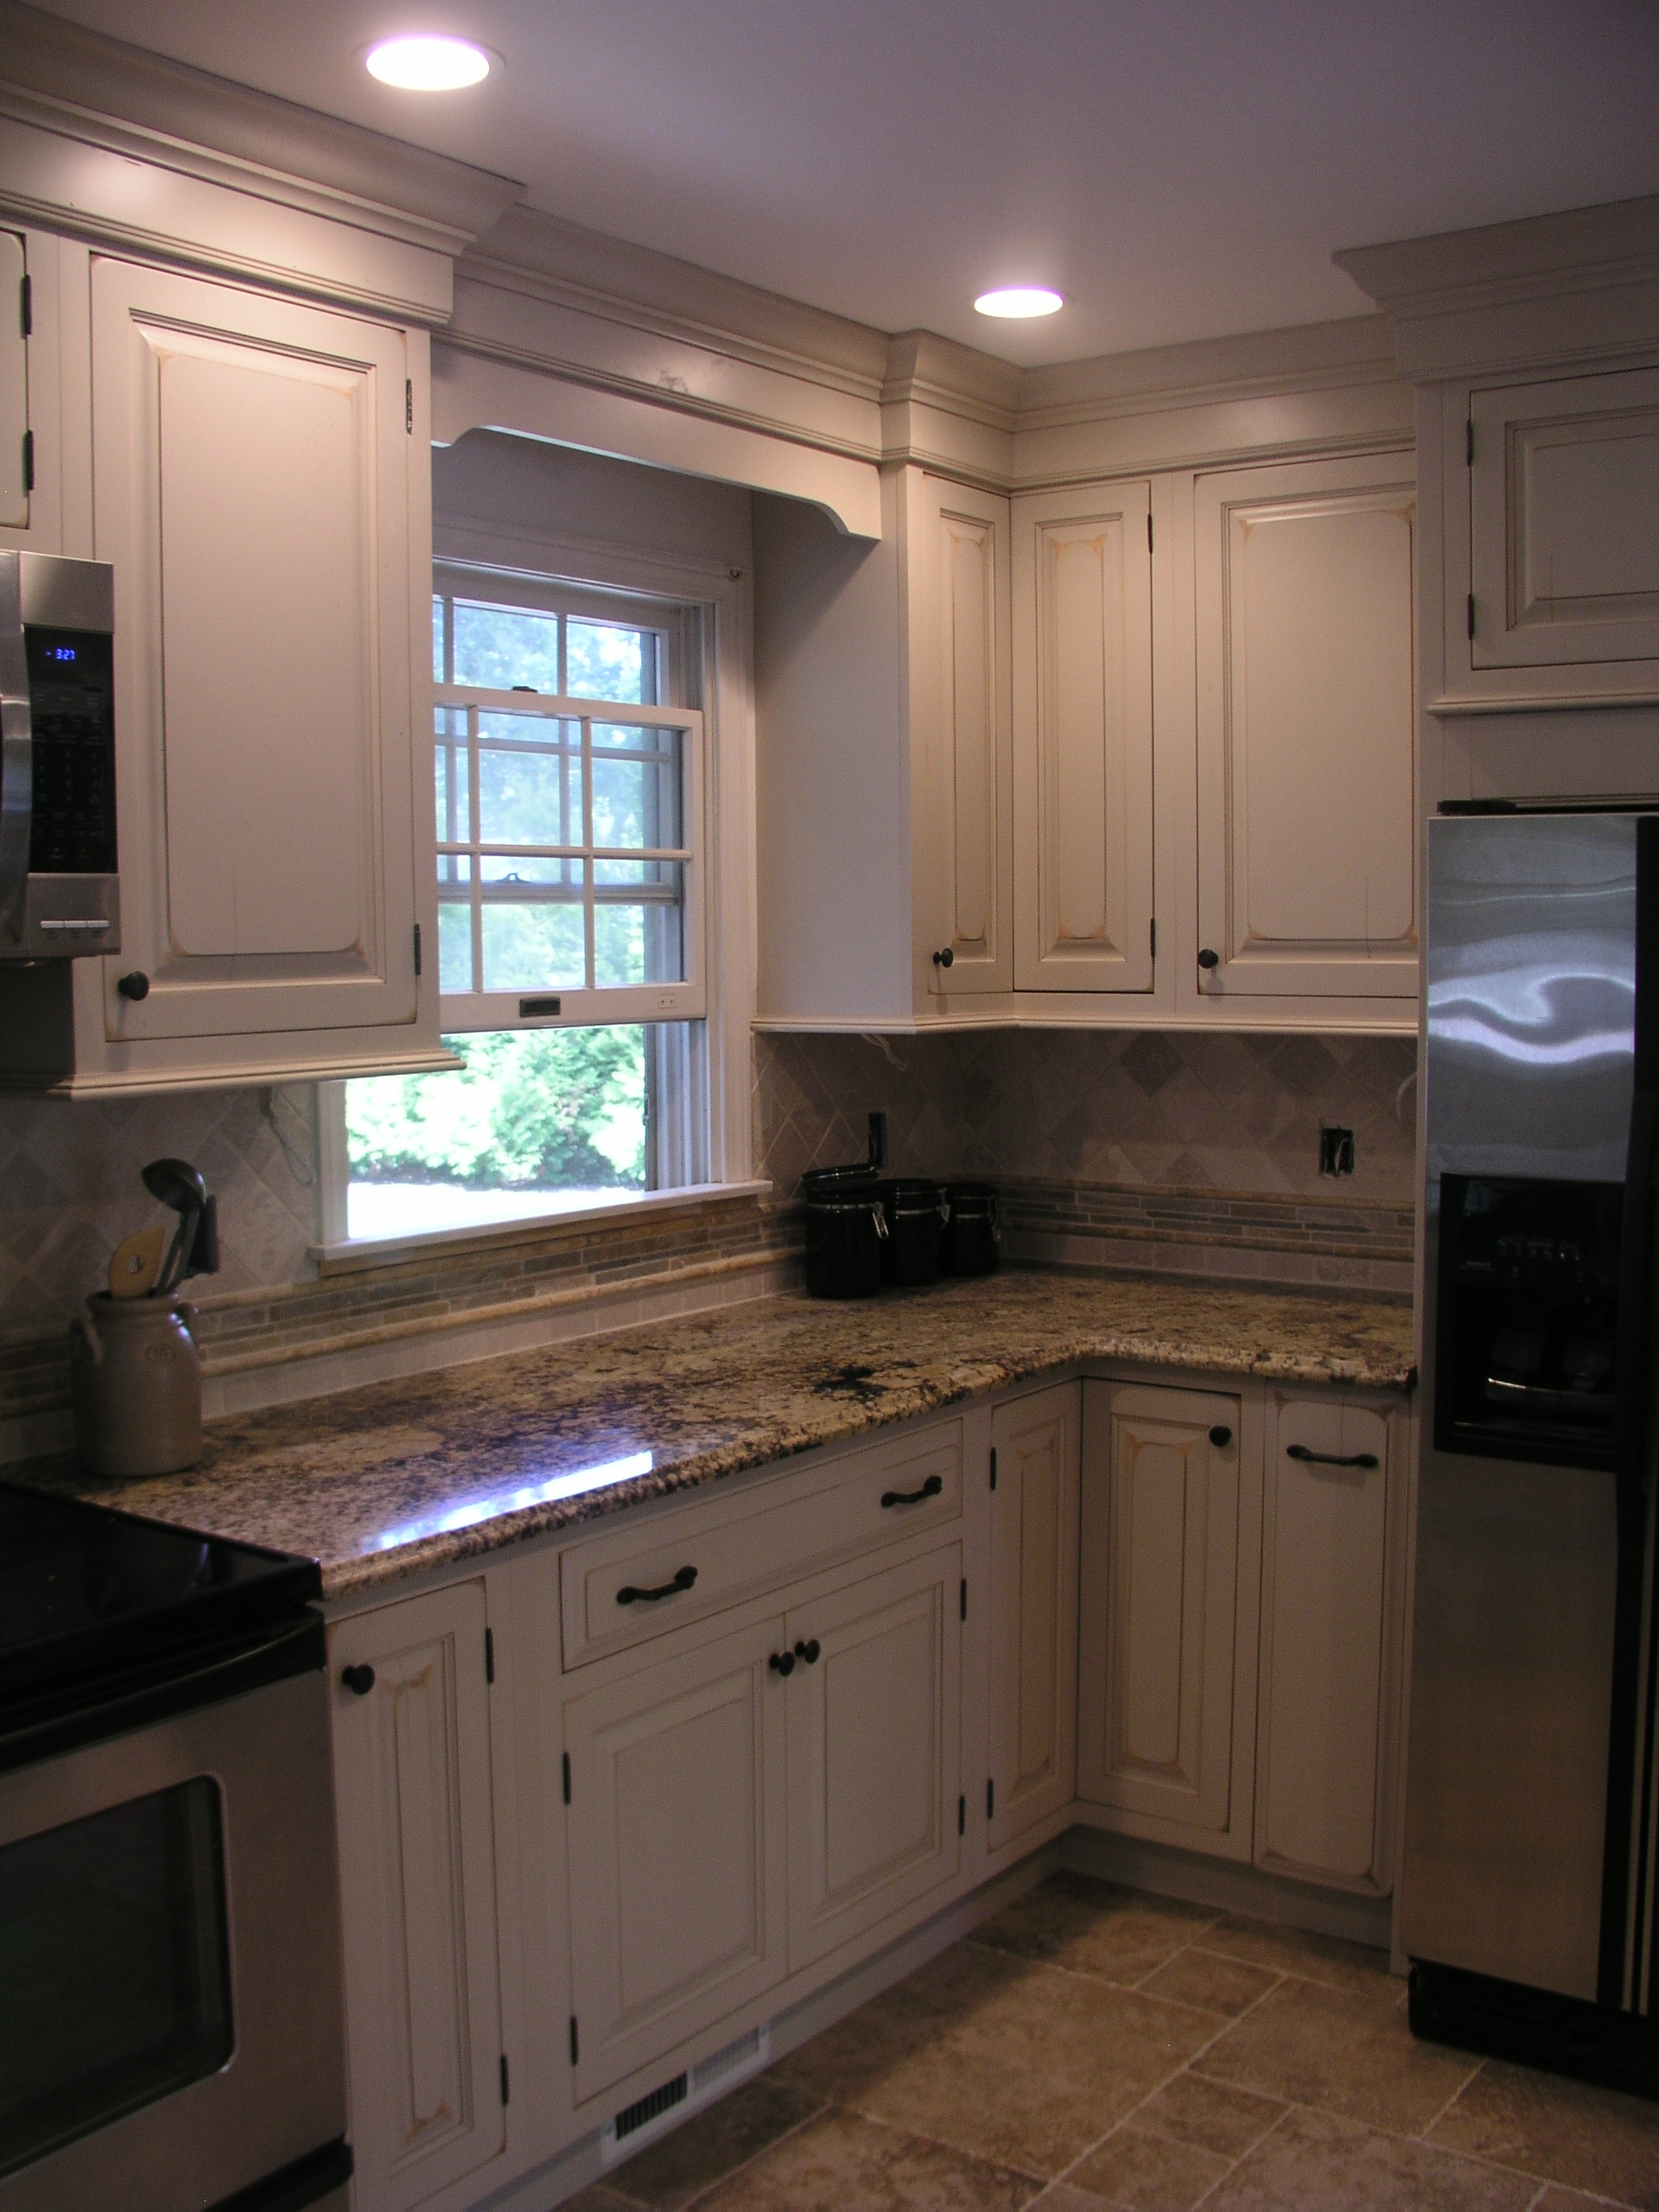 Old world charm for todays modern age family kitchen for Kitchen design center